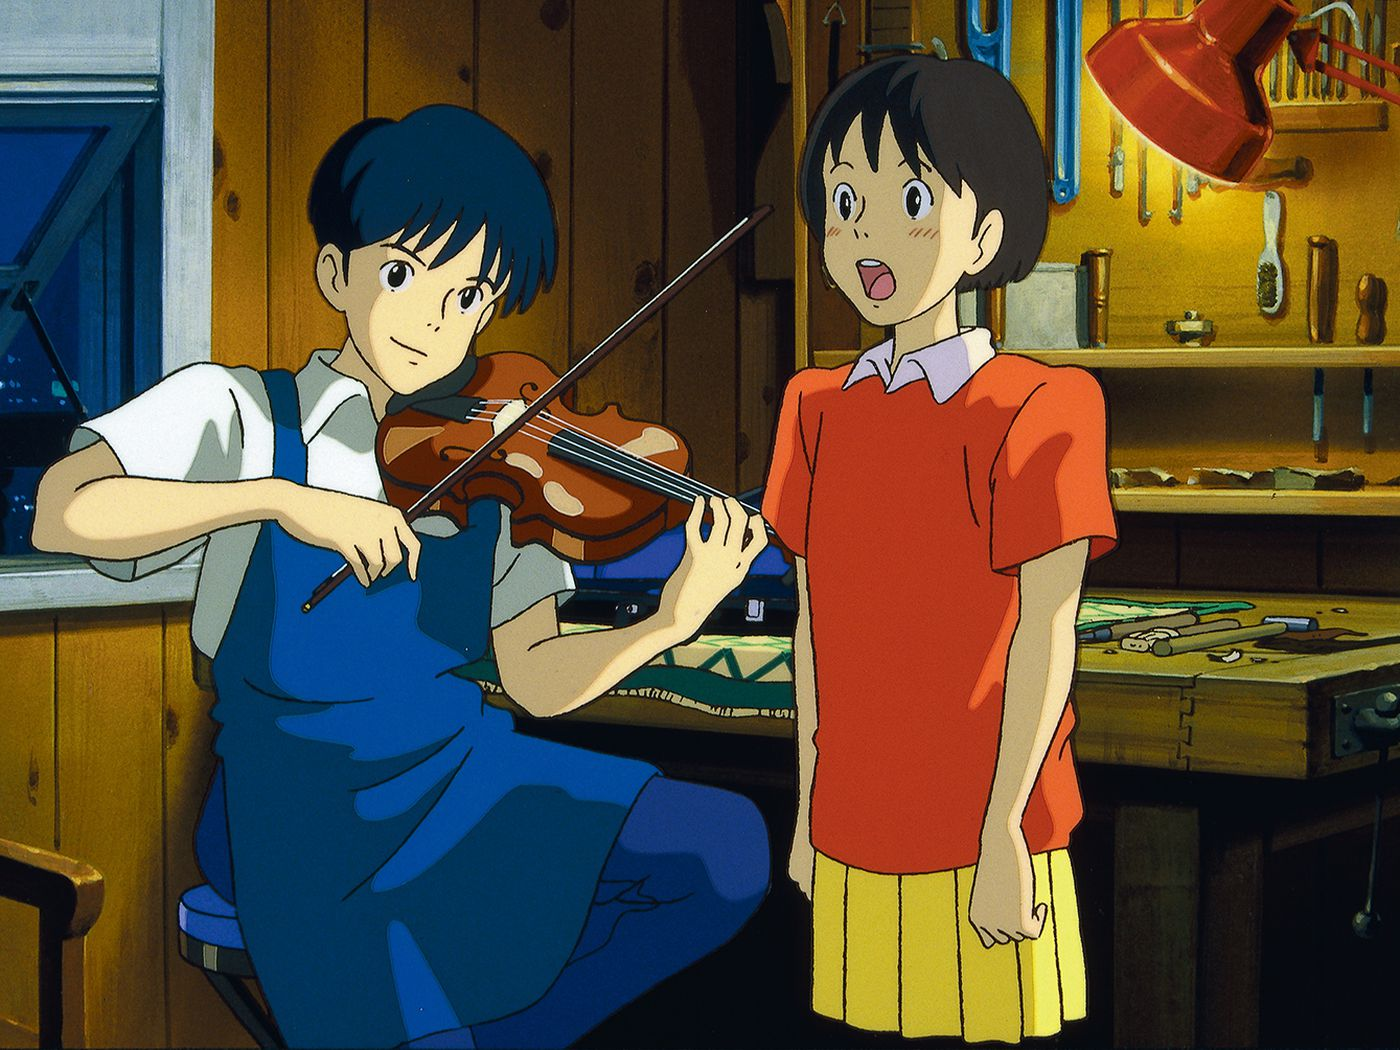 John Denver S Country Roads Finds New Meaning In Ghibli S Whisper Of The Heart Polygon